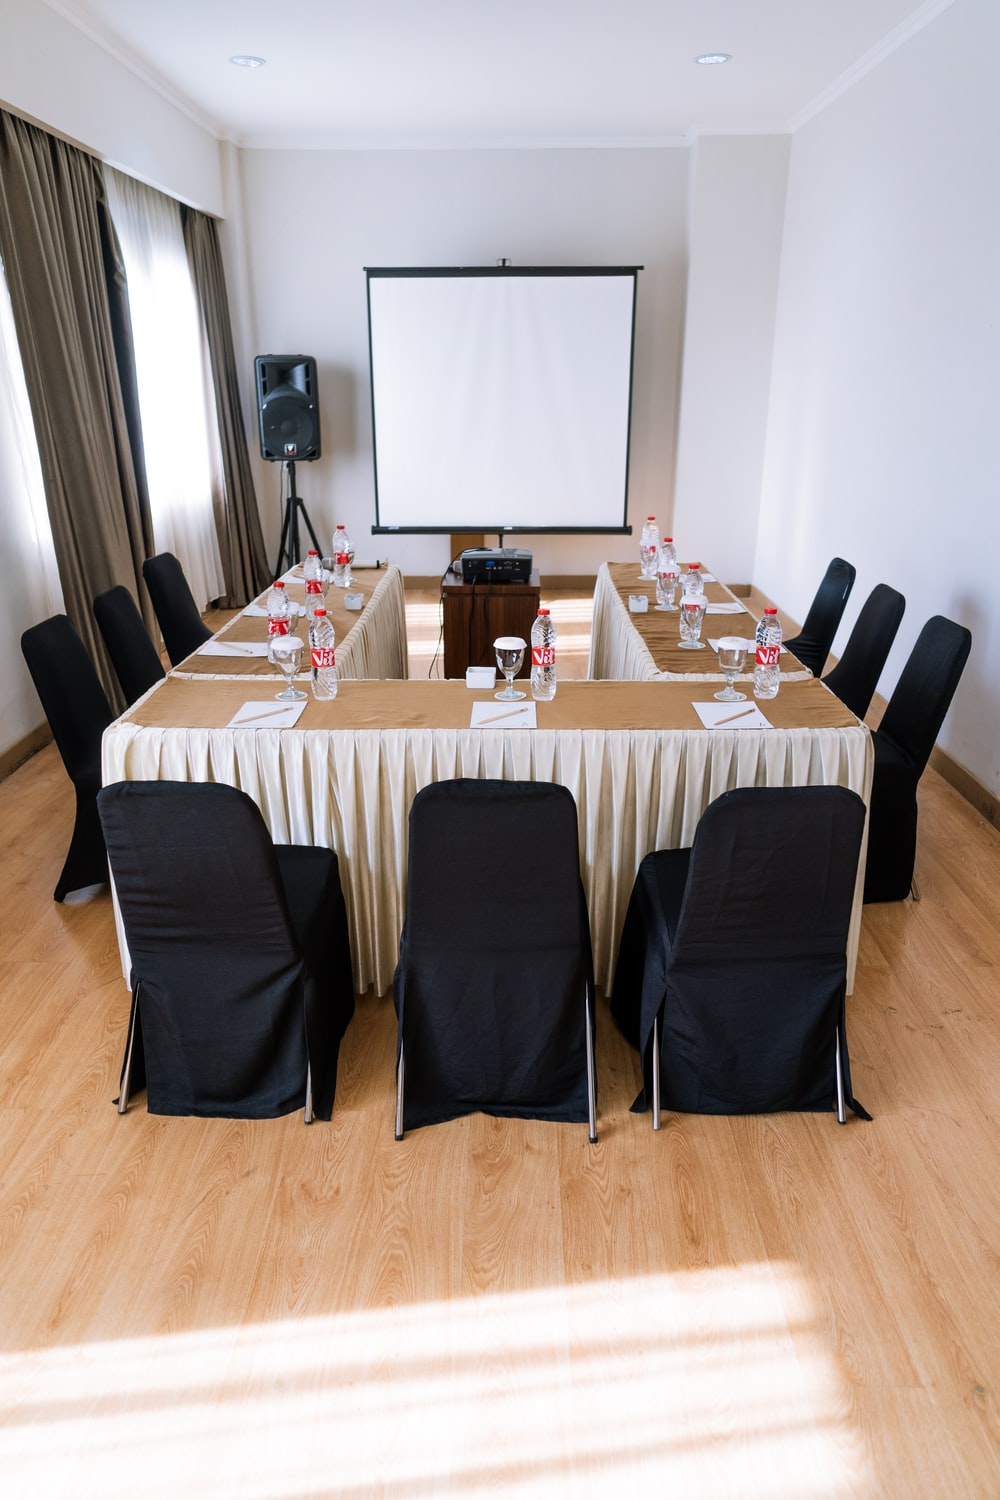 empty chairs inside room with projector canvas